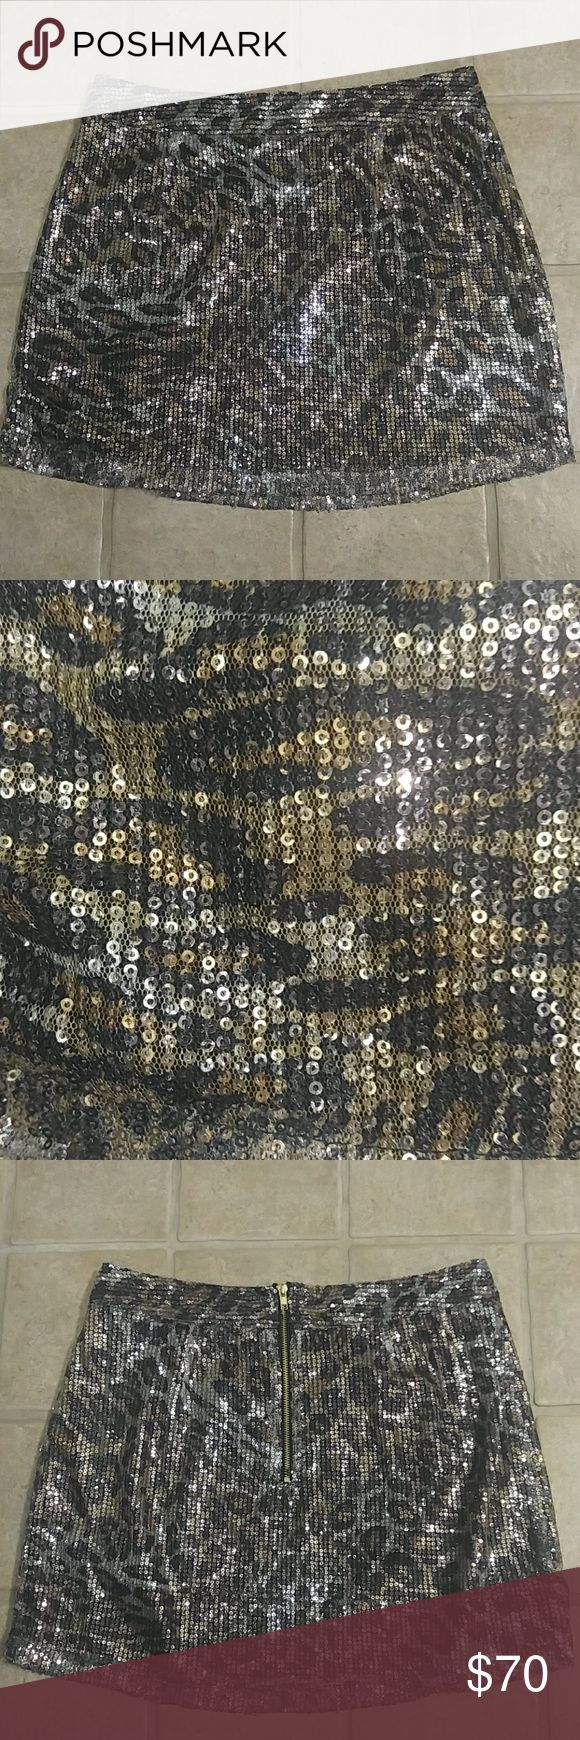 NWOT Sequin Leopard Mini Skirt Brand new, never worn. Shimmer gold/black/silver leopard print sequin mini skirt. Back zipper, fully lined. Purchased in mid 2000s. Moon Collection Skirts Mini